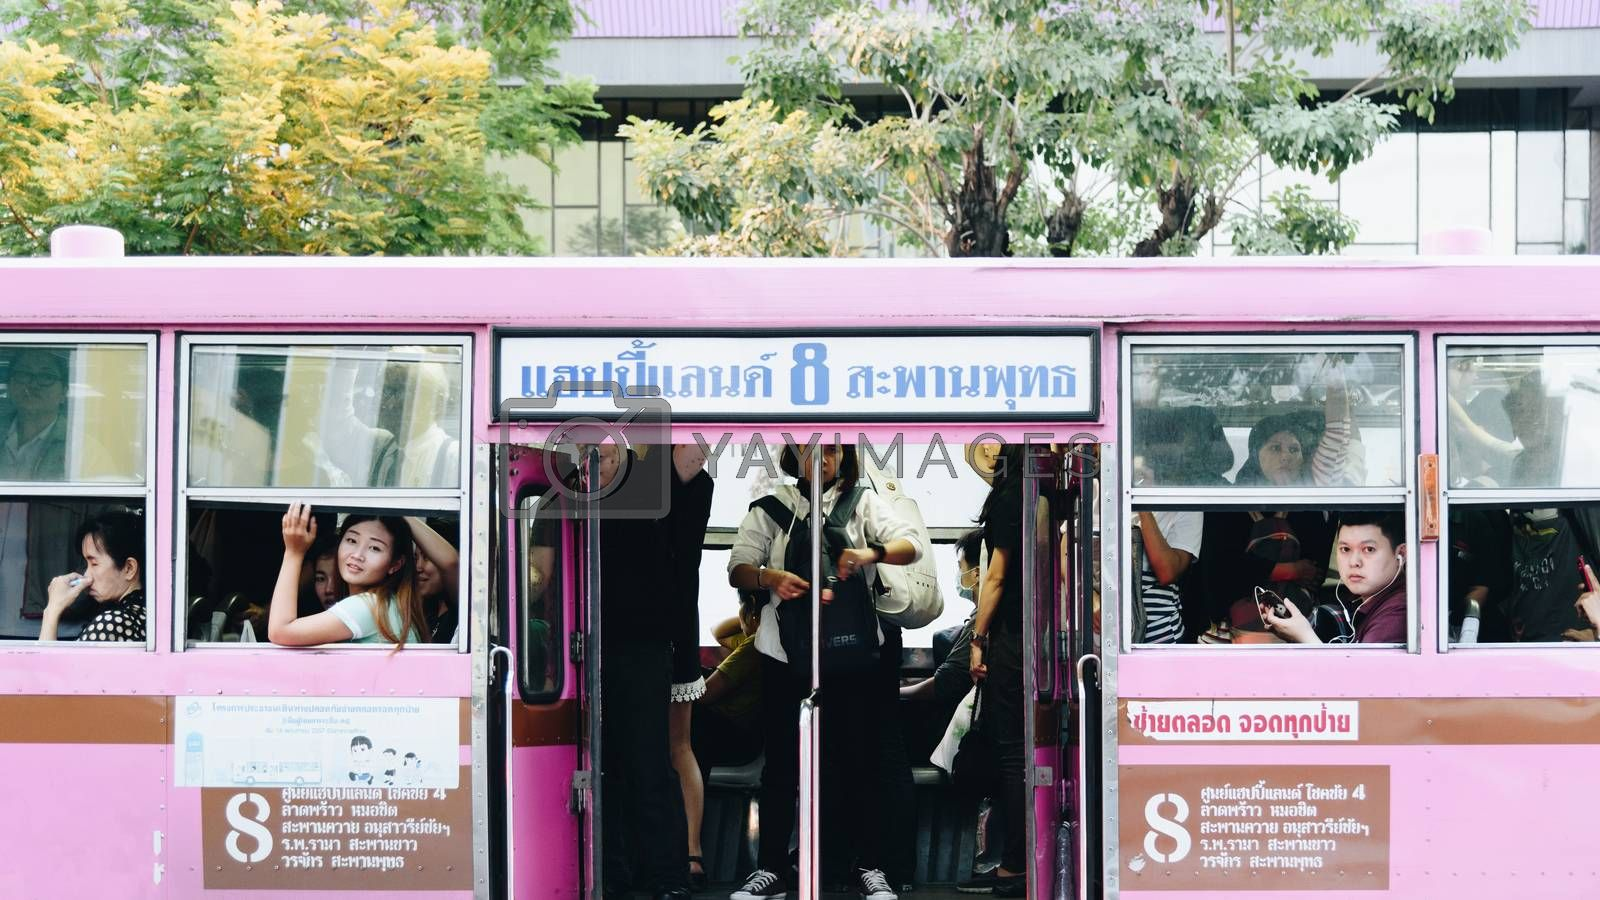 Bangkok, Thailand - May 9, 2017 : Unidentified people travel by bus in Bangkok. Buses are one of the most important public transport system in Bangkok.